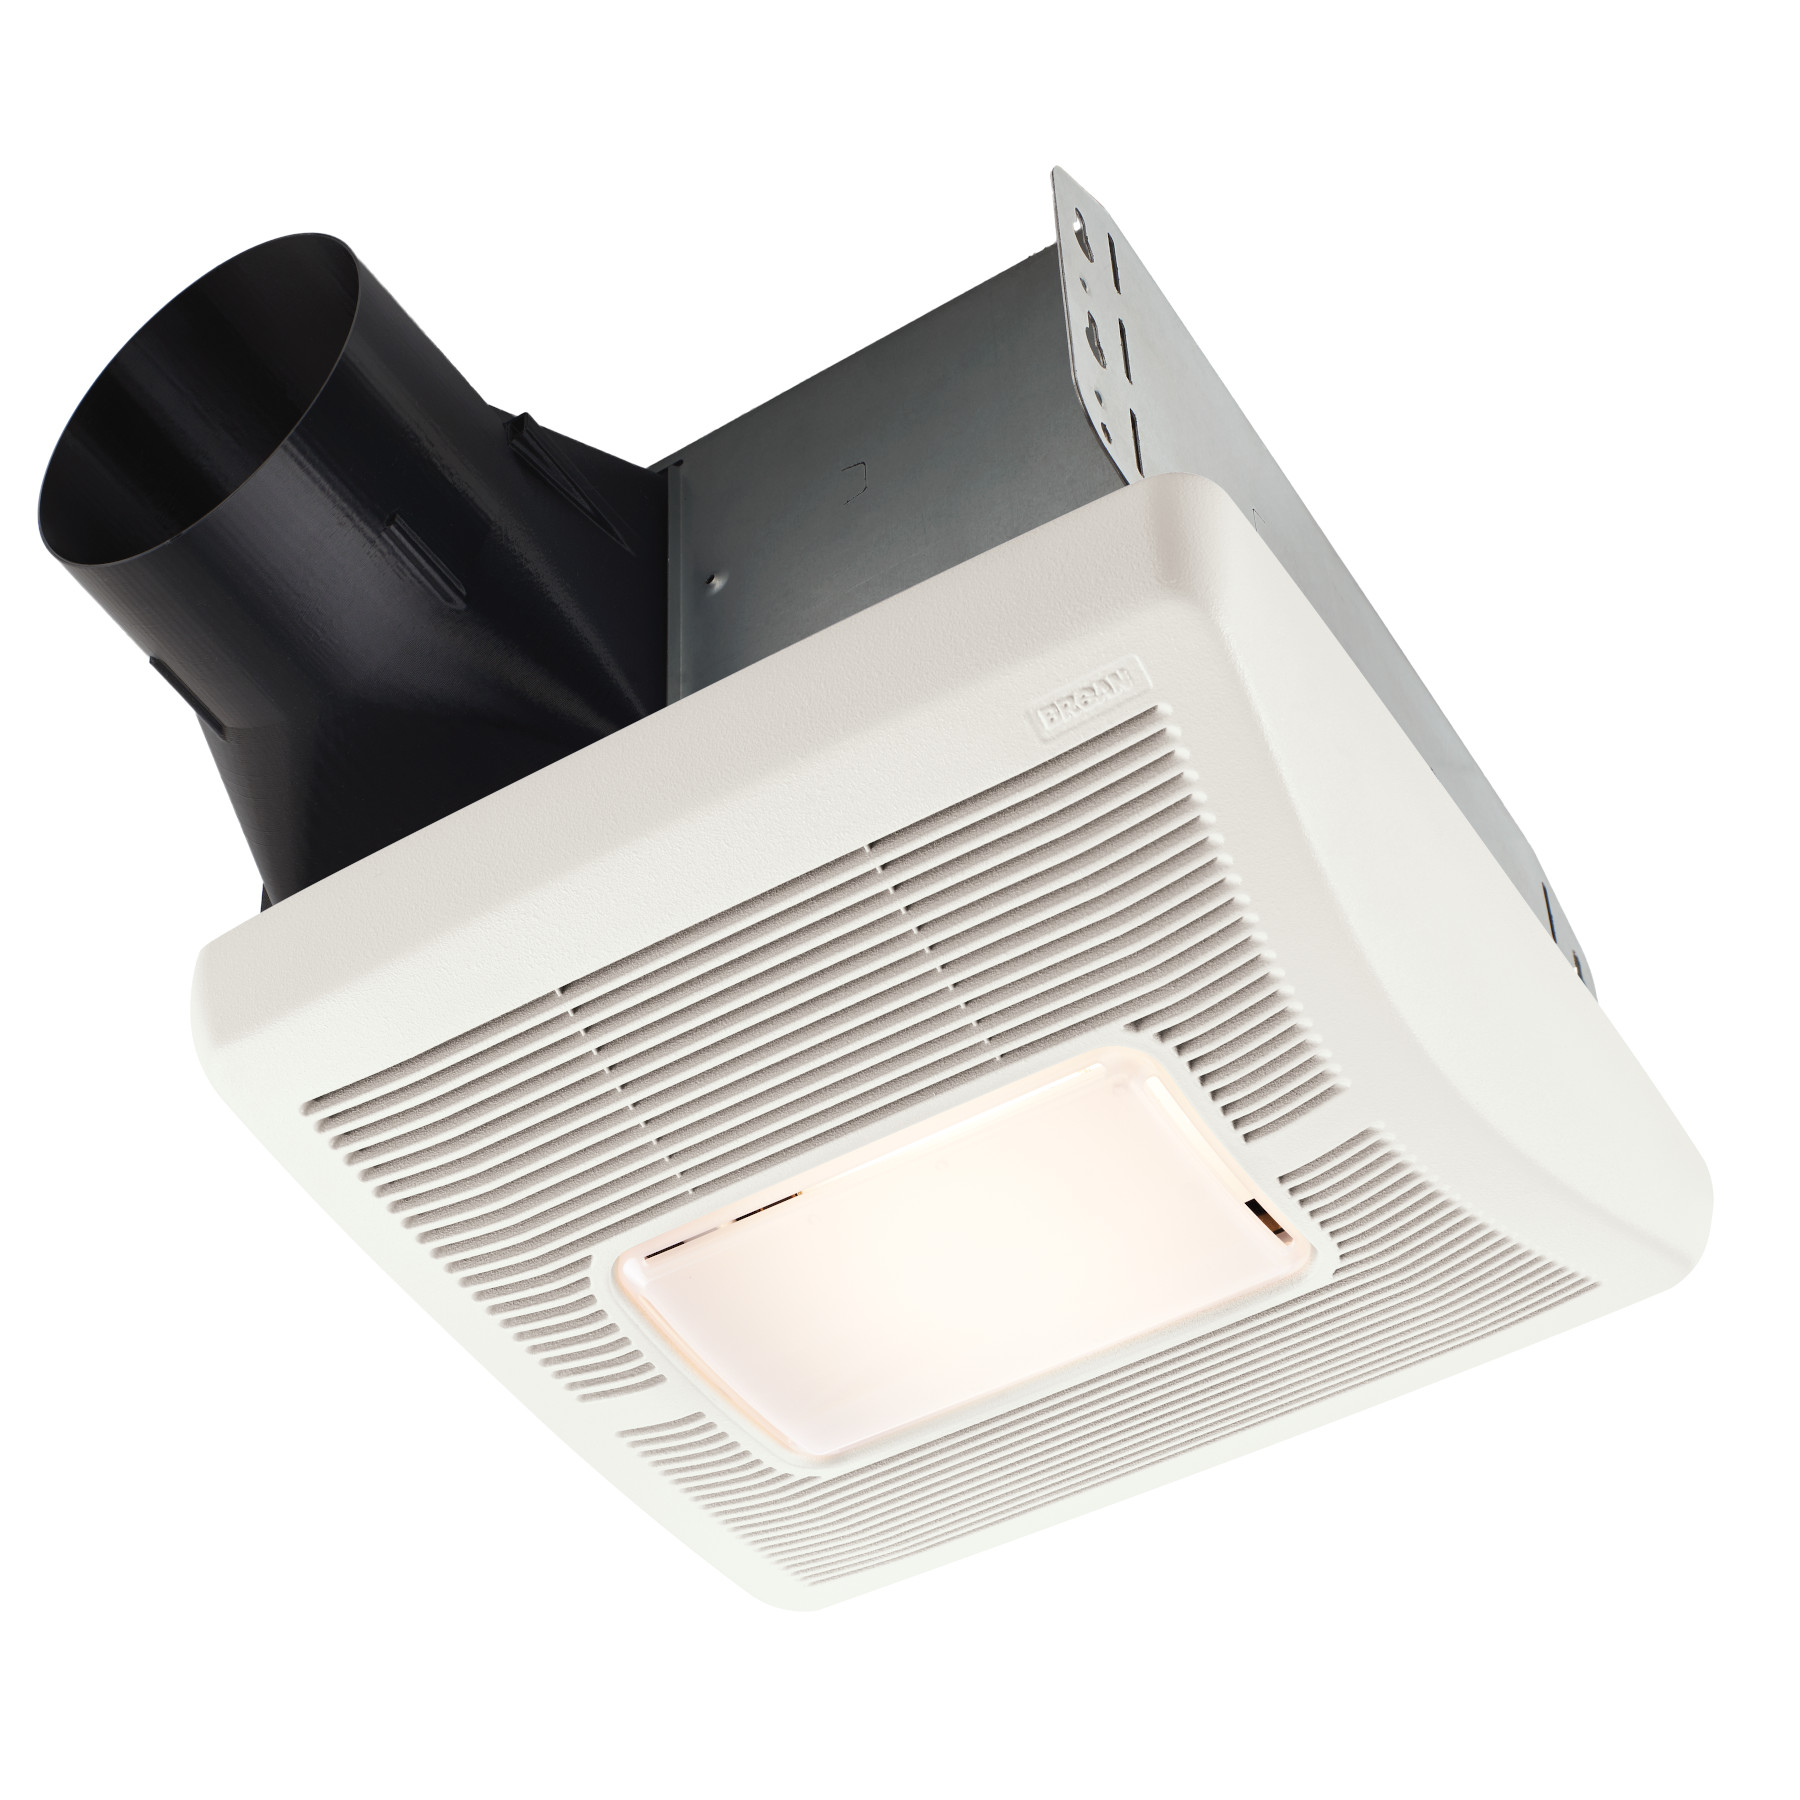 Broan Flex™ Series 50 CFM Single Speed Ceiling Room Side Installation Bathroom Exhaust Fan with Light